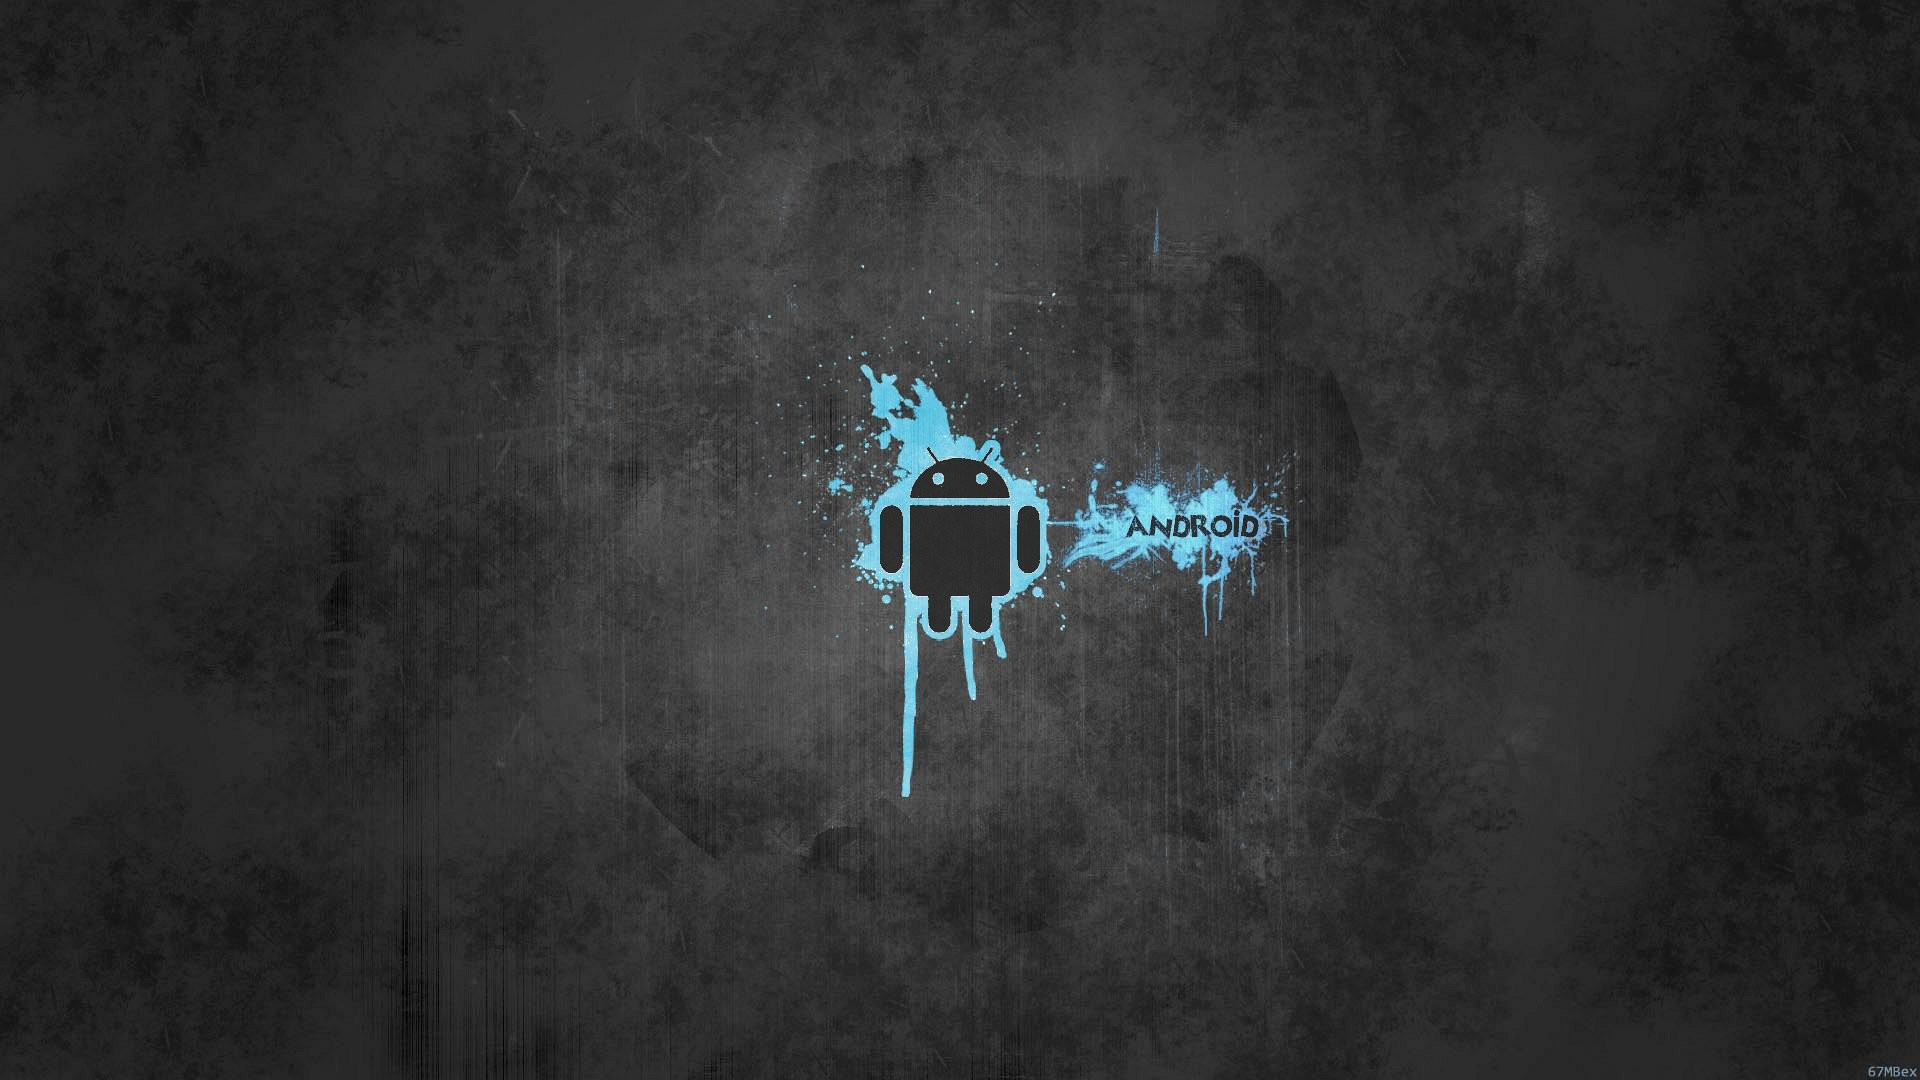 1920x1080 Wallpaper gray and blue android